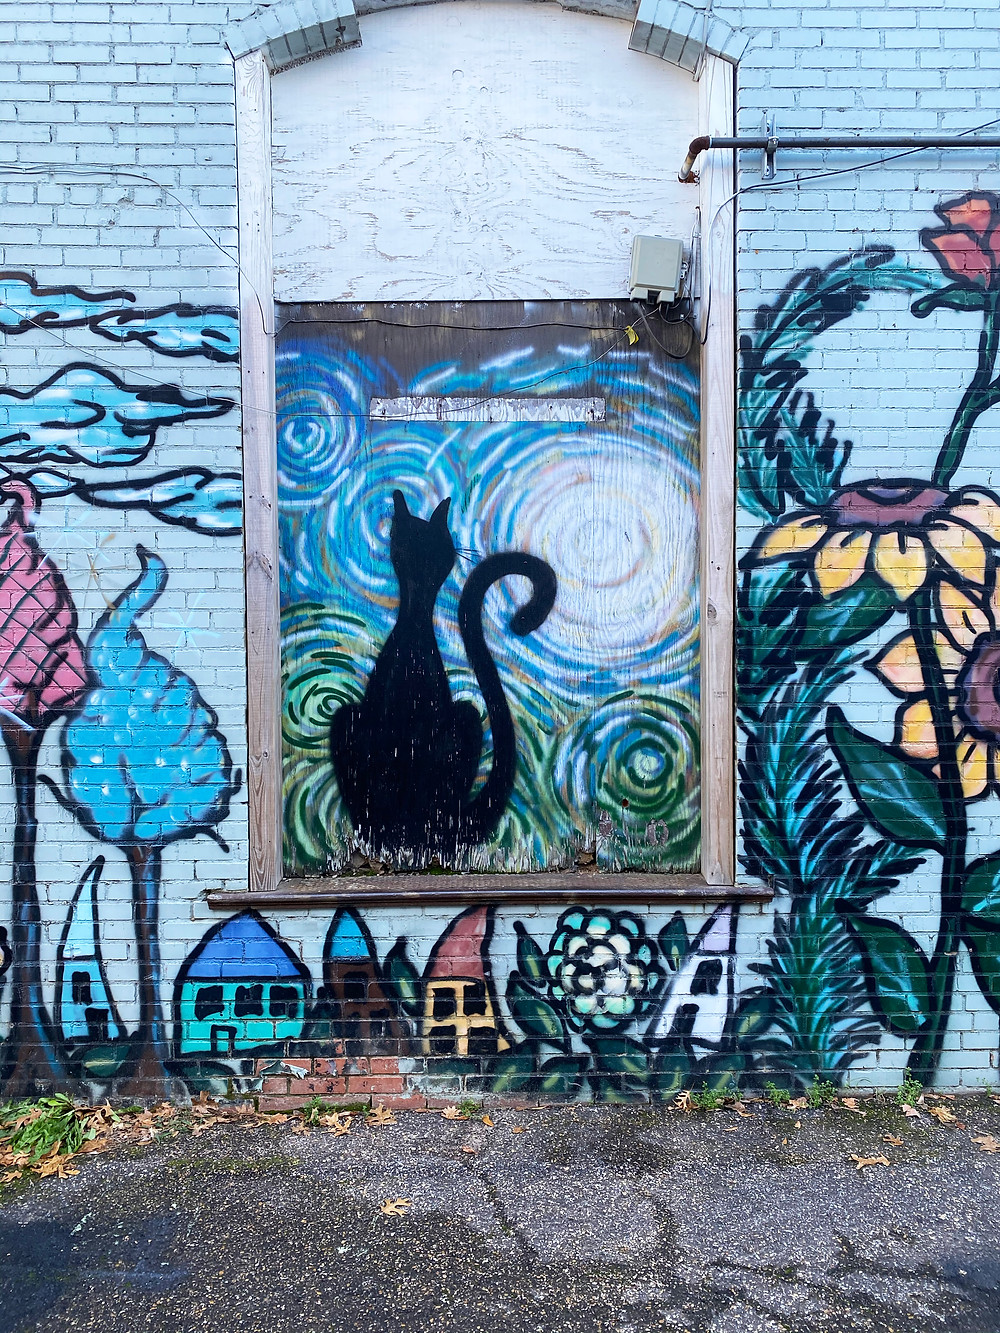 Painted mural of black cat, houses and flowers.